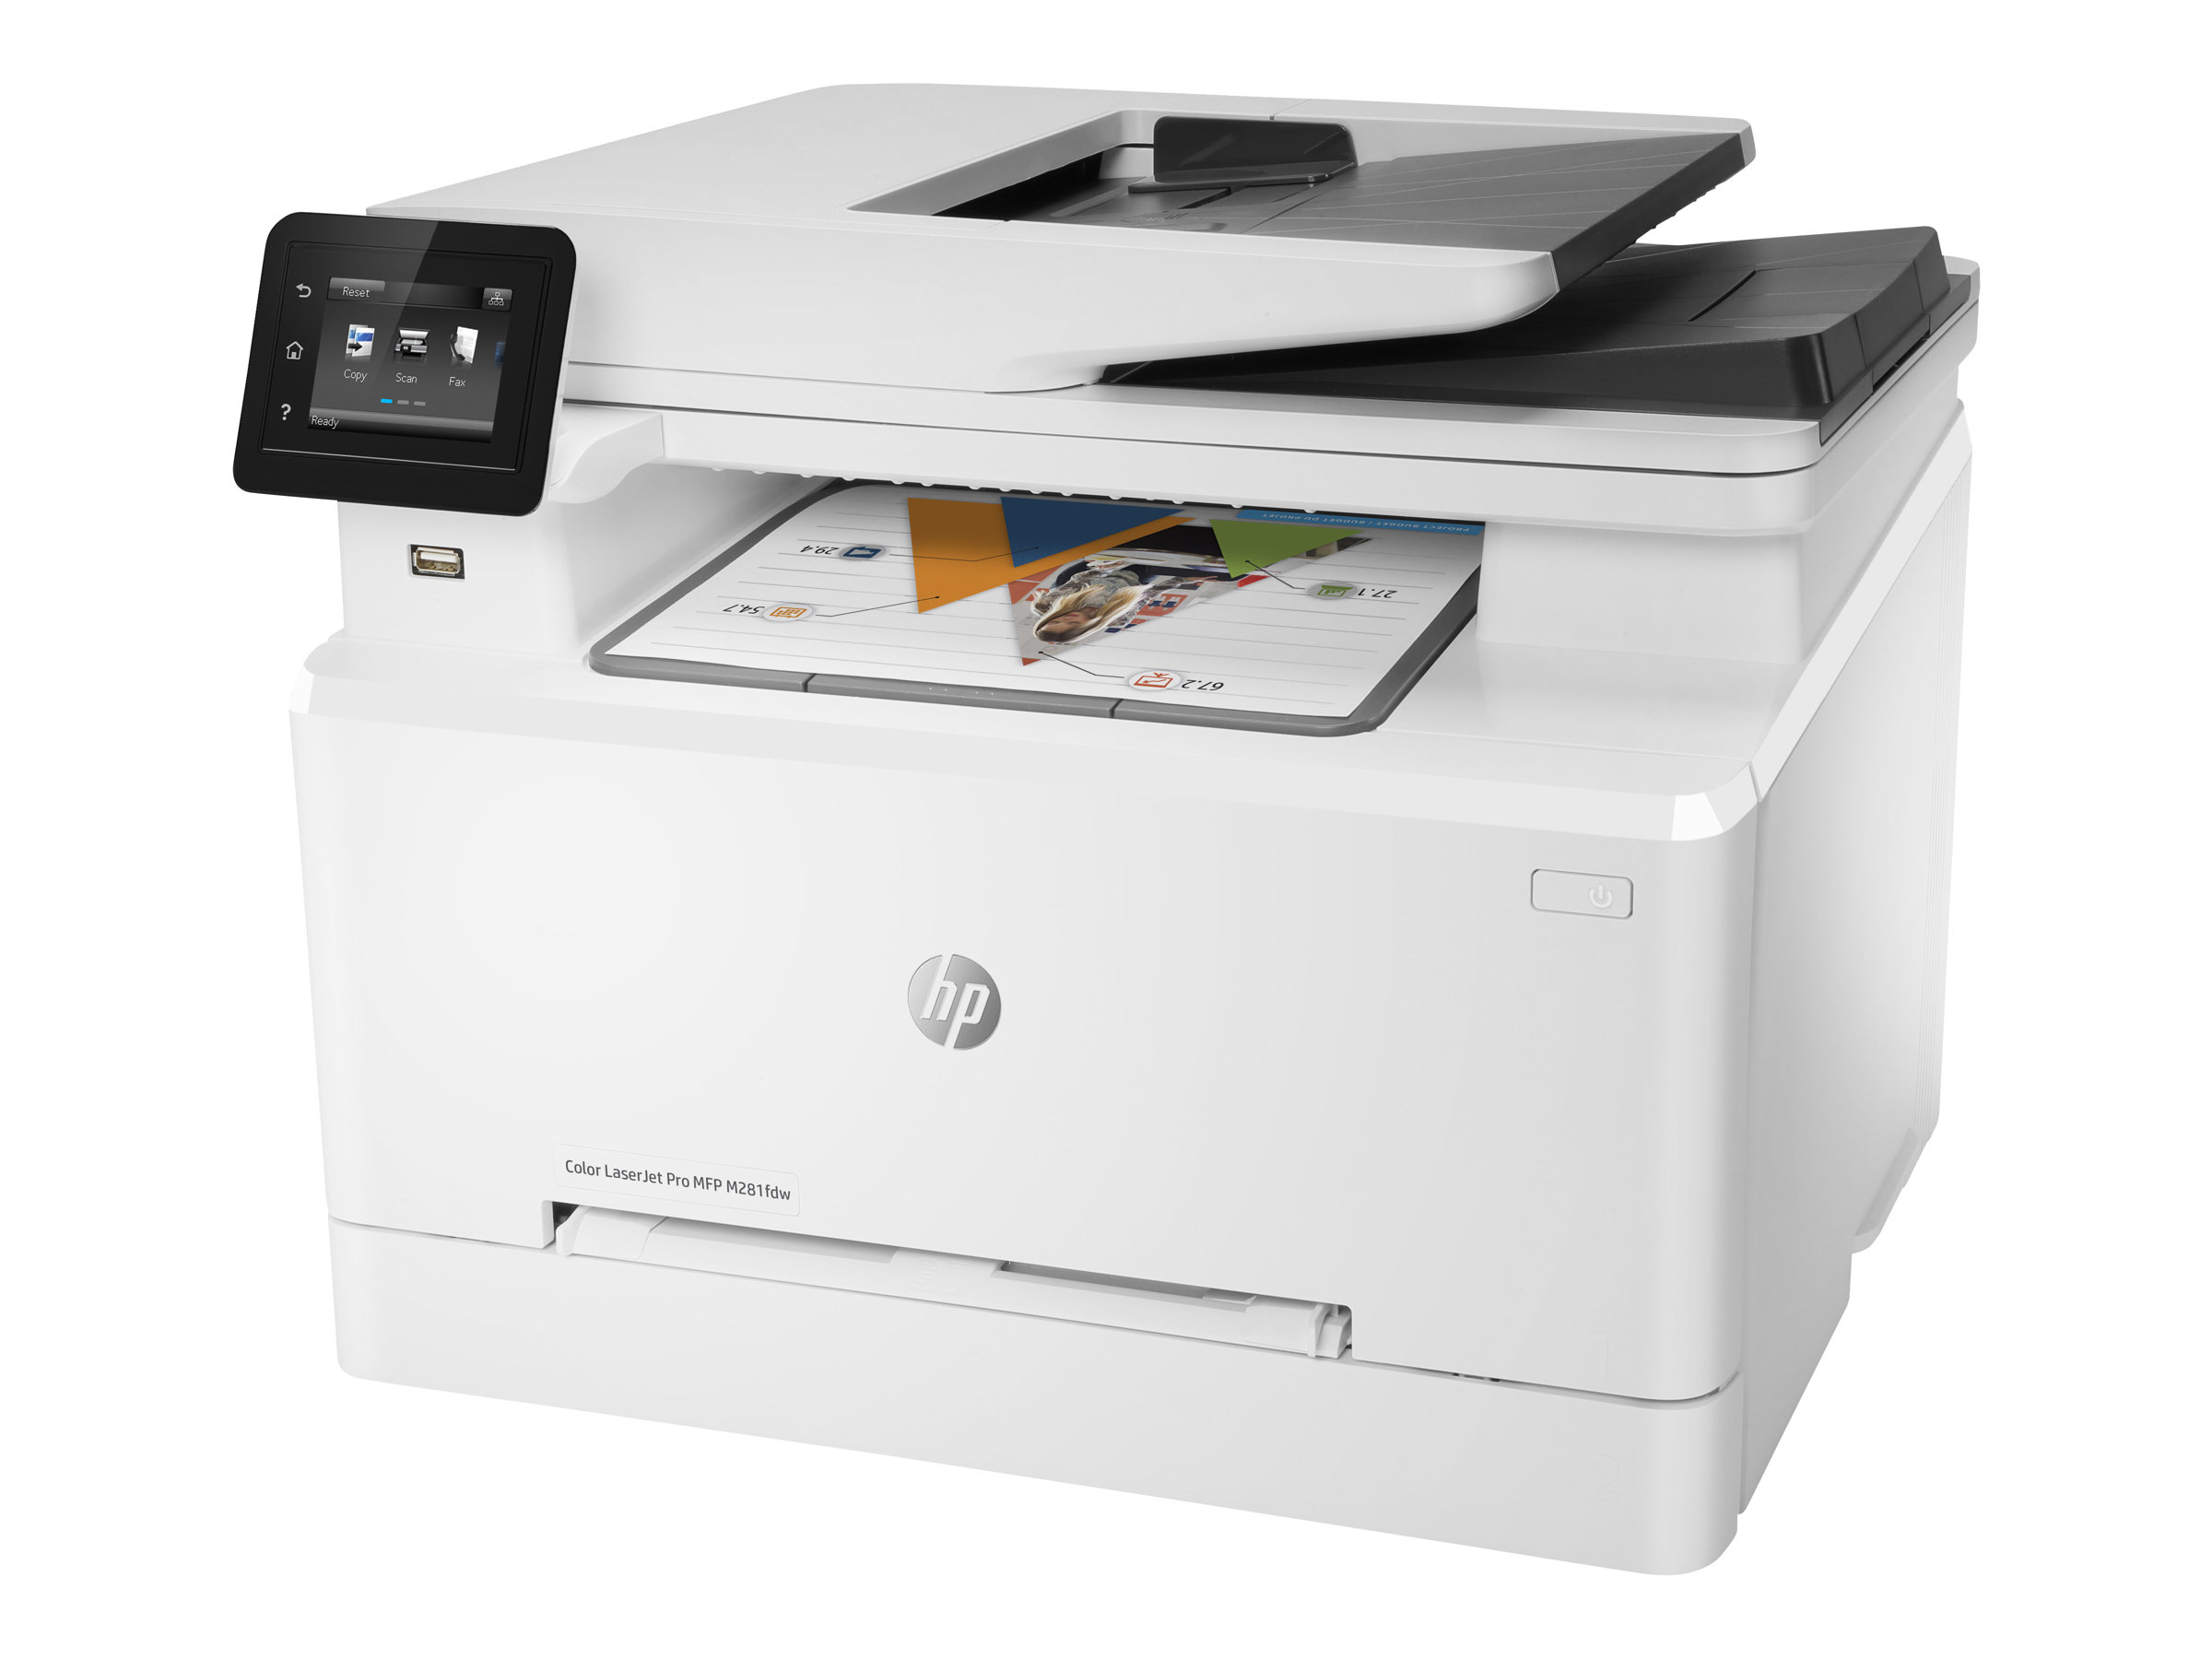 HP Color LaserJet Pro MFP M281fdw - multifunction printer - color